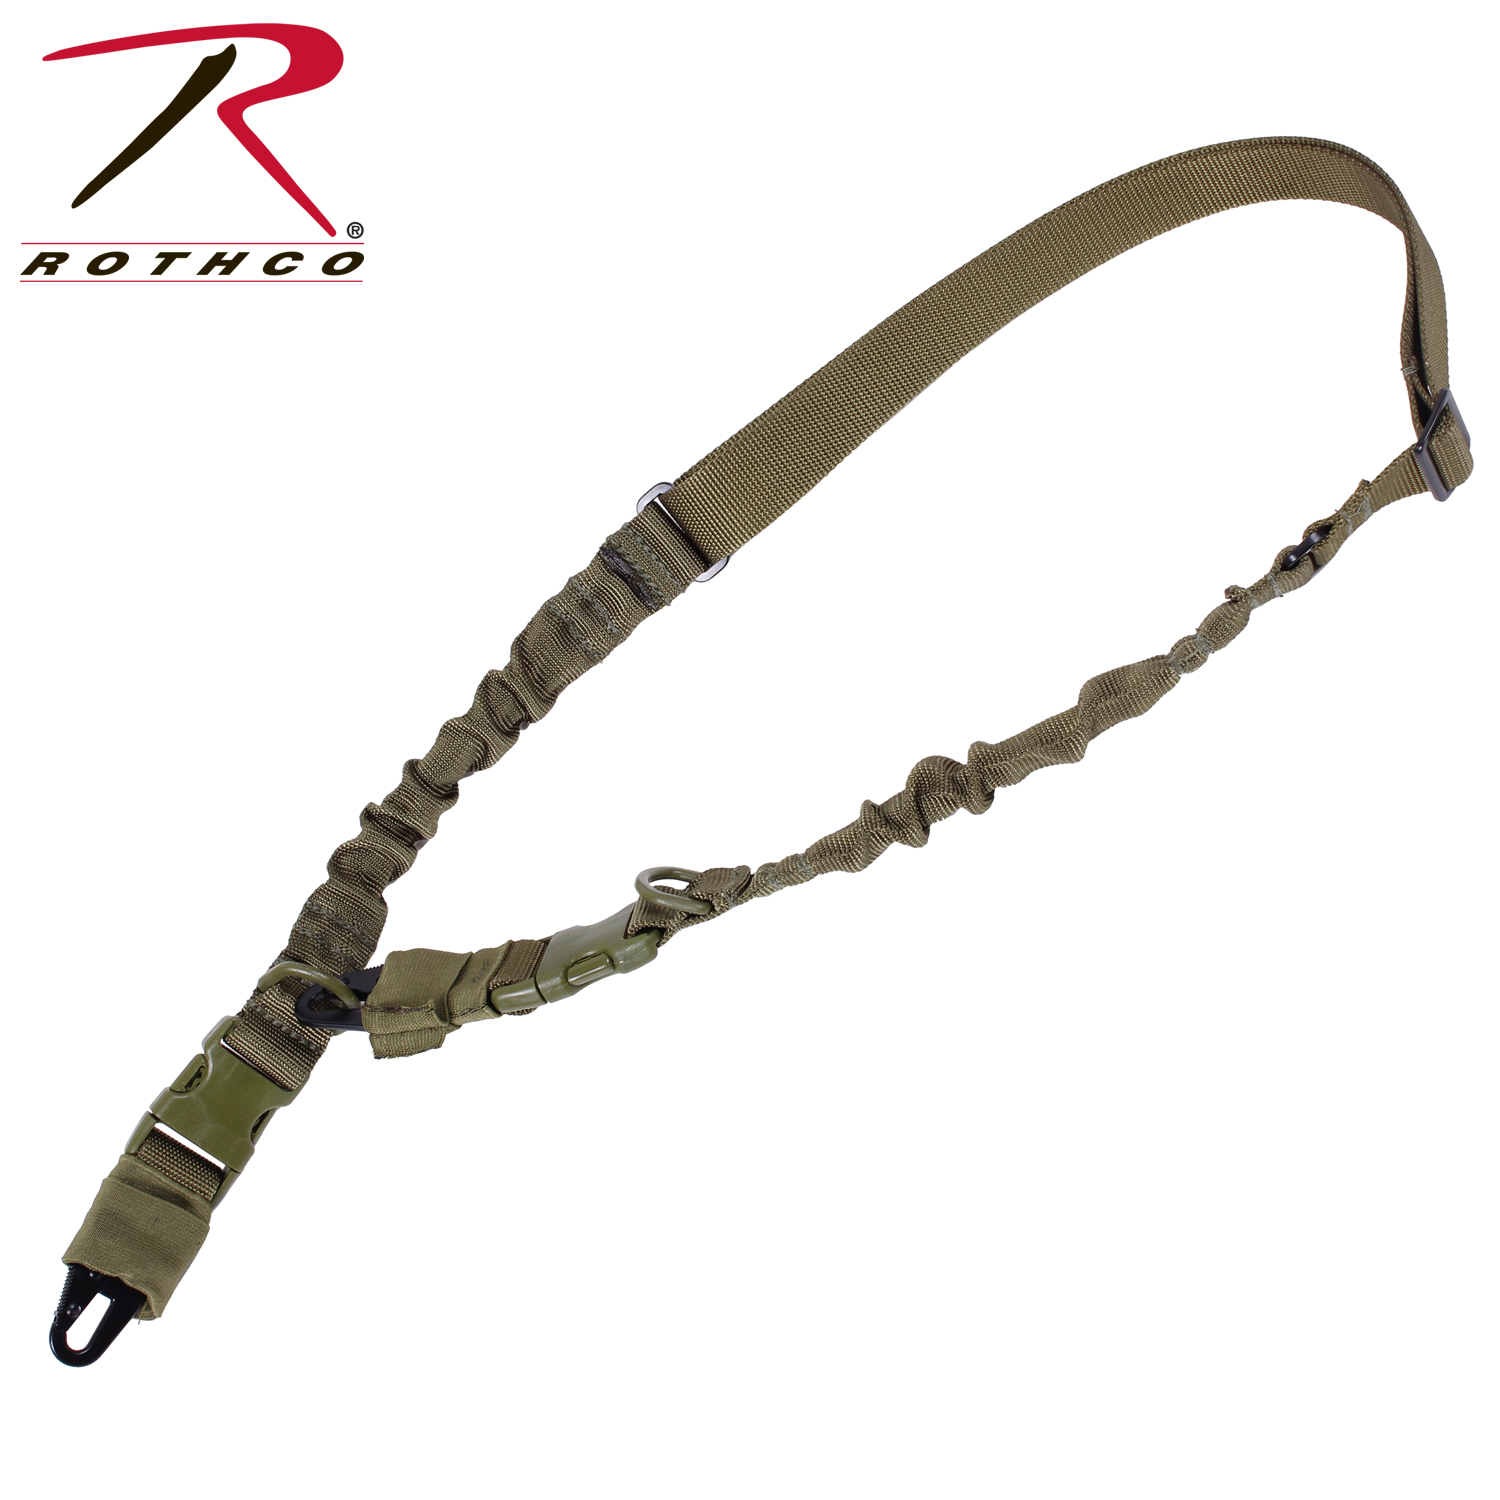 Rothco single point tactical sling